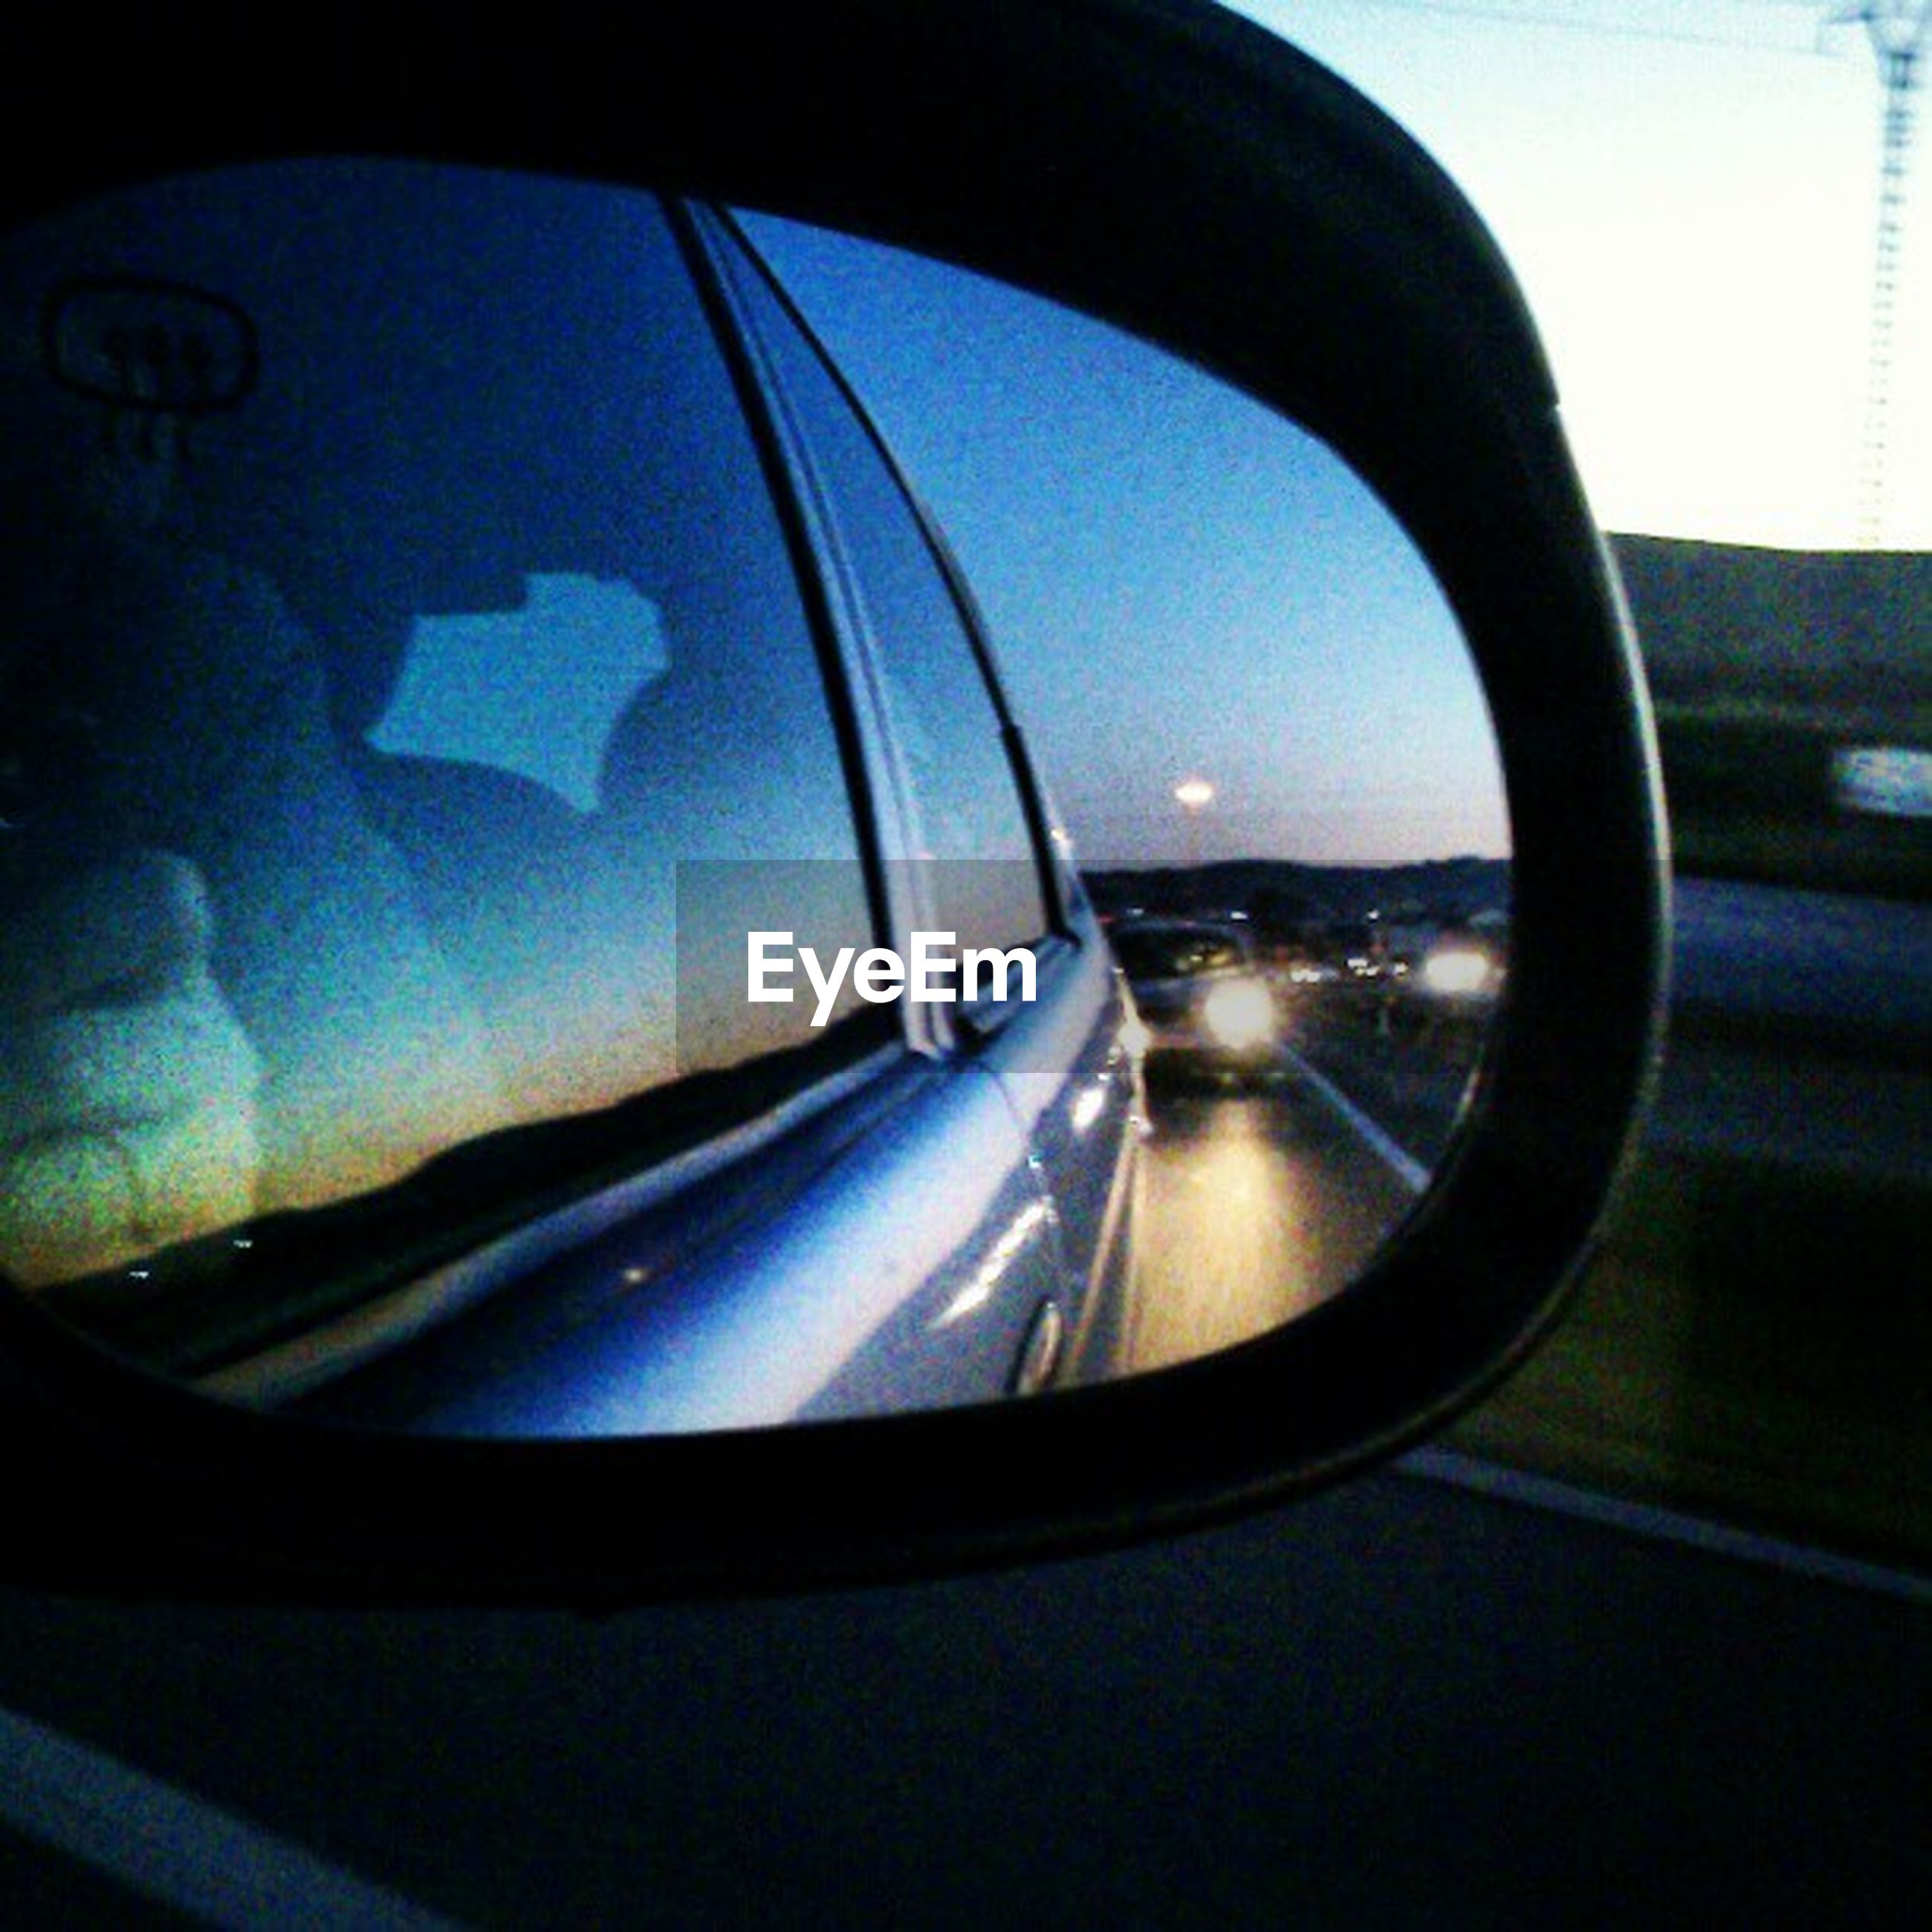 transportation, mode of transport, car, vehicle interior, land vehicle, glass - material, transparent, window, car interior, windshield, travel, reflection, part of, side-view mirror, on the move, road, airplane, cropped, blue, close-up